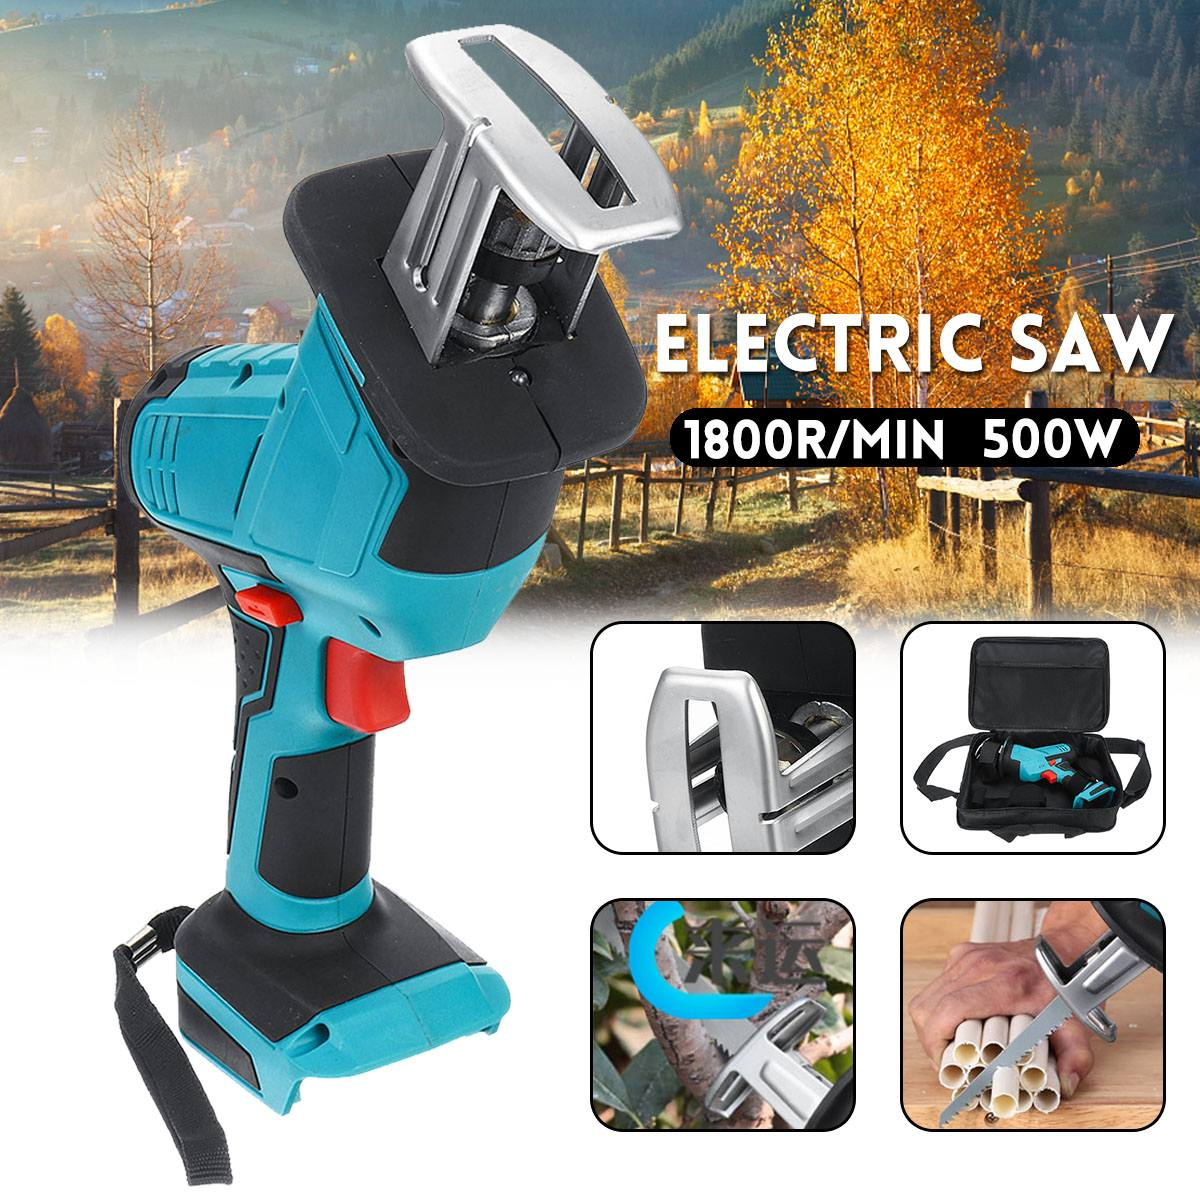 2020 New 500W Electric Saw Cordless Reciprocating Saw Metal Cutting Tool Portable Woodworking Cutter for 18V Makita Battery